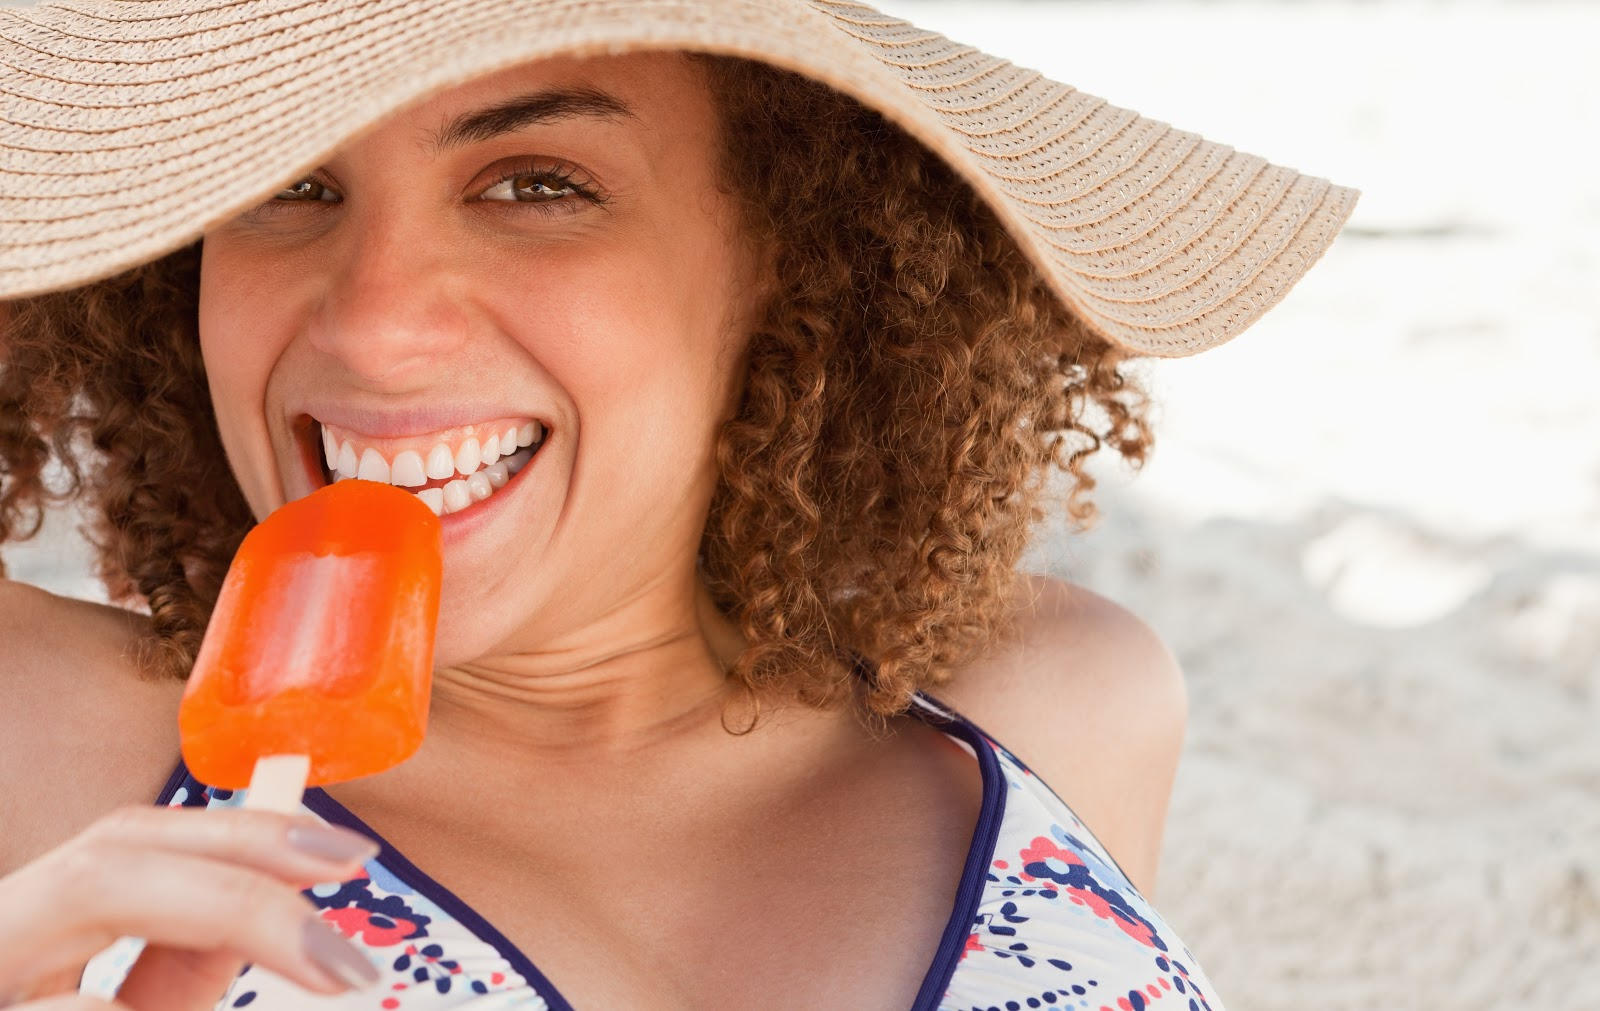 smiling woman enjoying a popsicle while wearing a hat